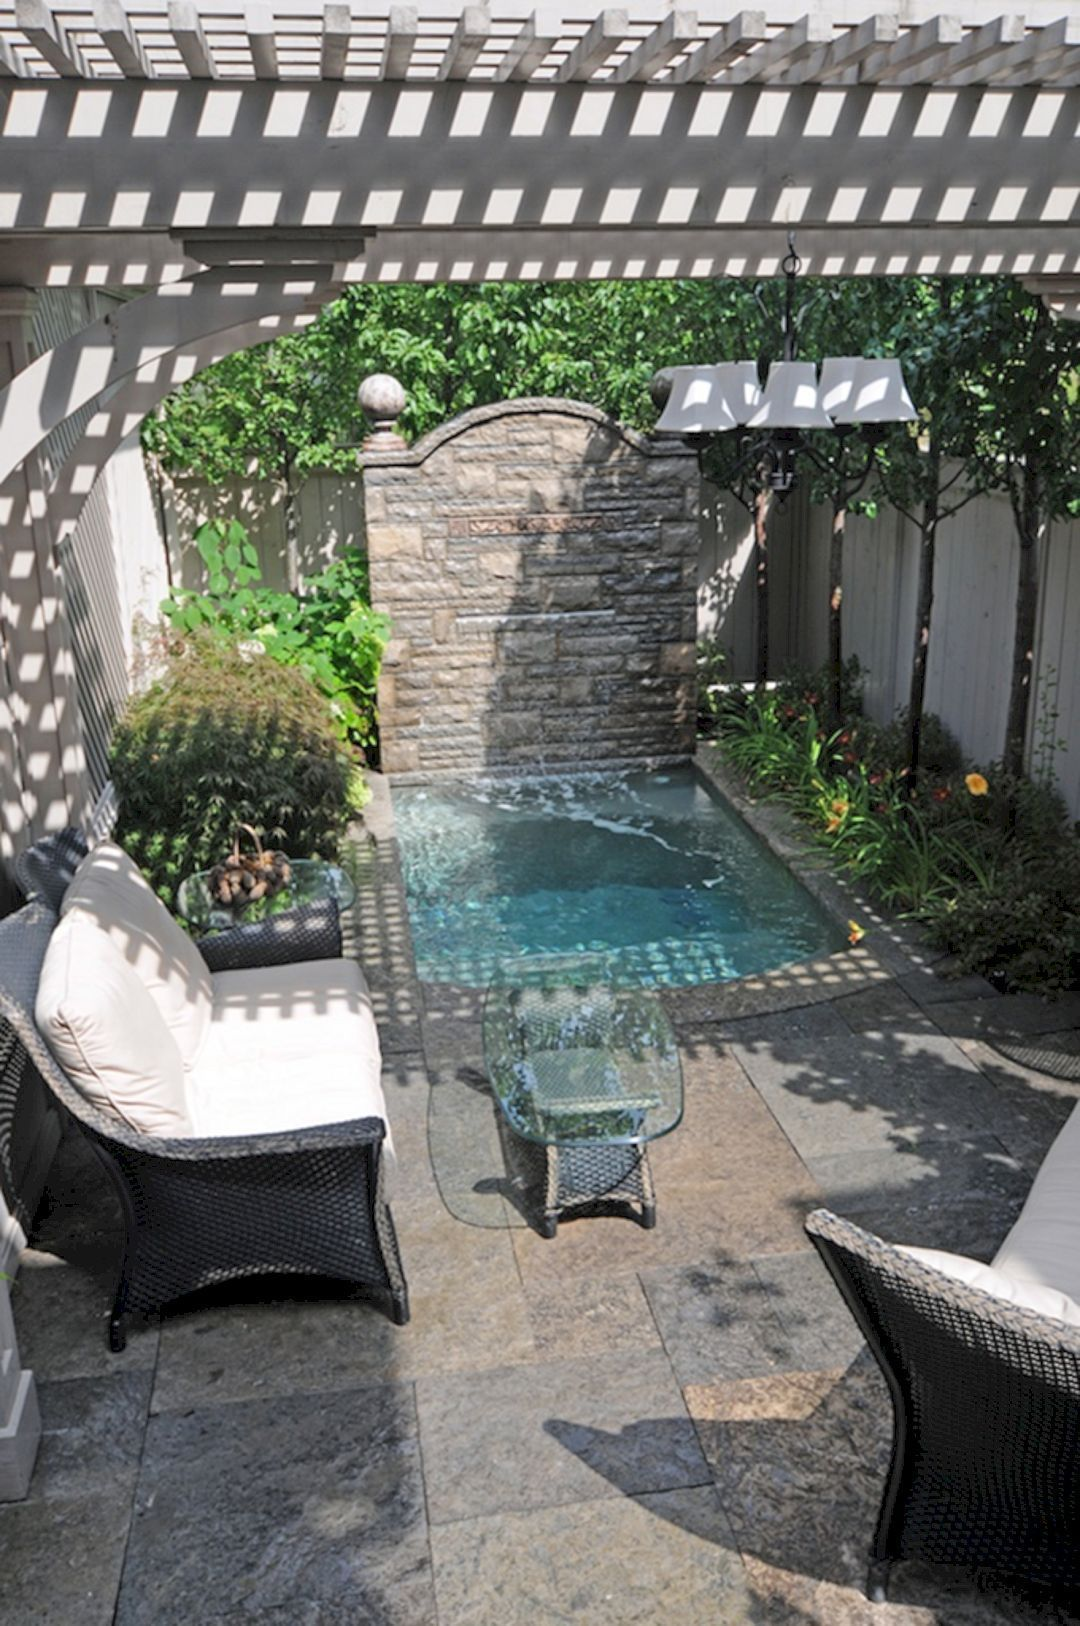 Coolest Small Pool Ideas: 155 Nice Example Photos | Home ...